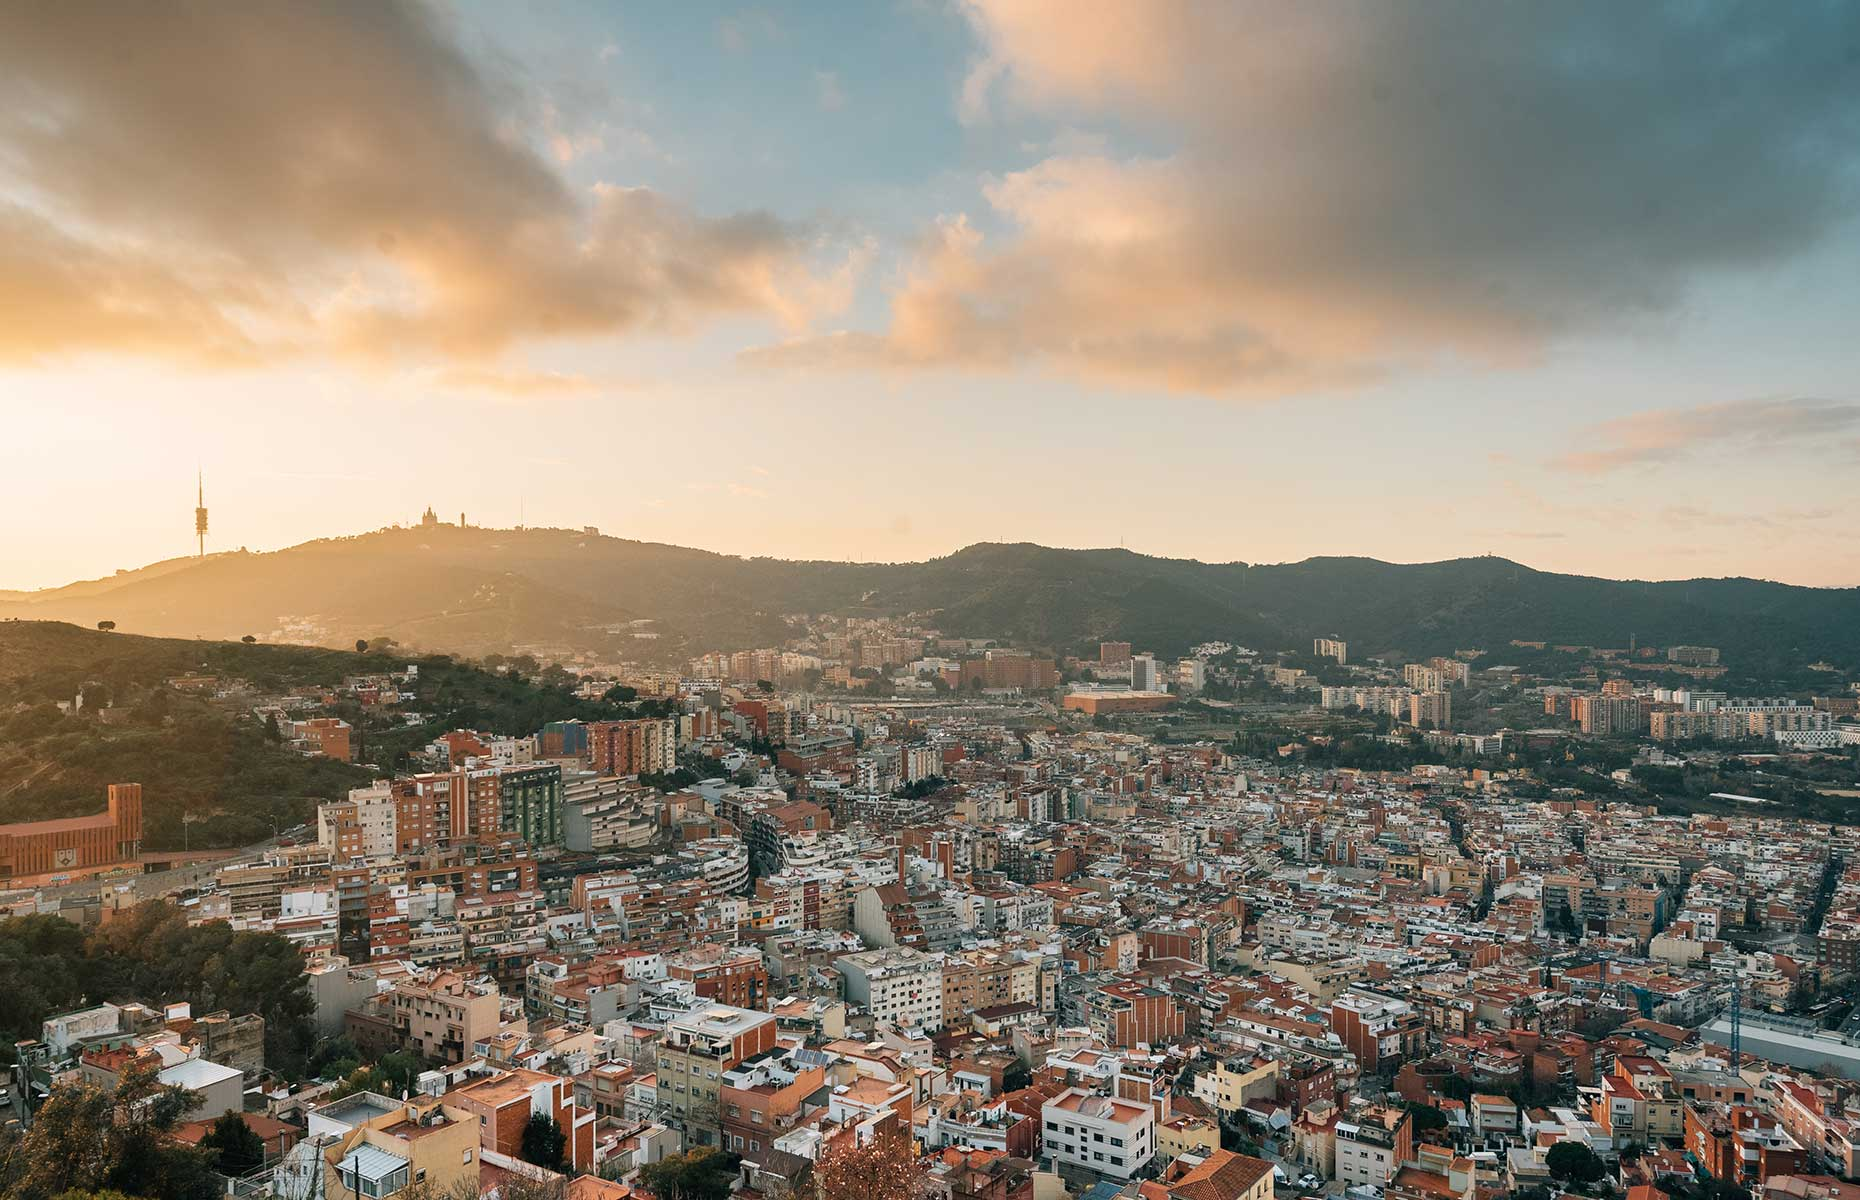 The view at sunset over Barcelona from the Bunkers del Carmel (Image: Jon Bilous/Shutterstock)